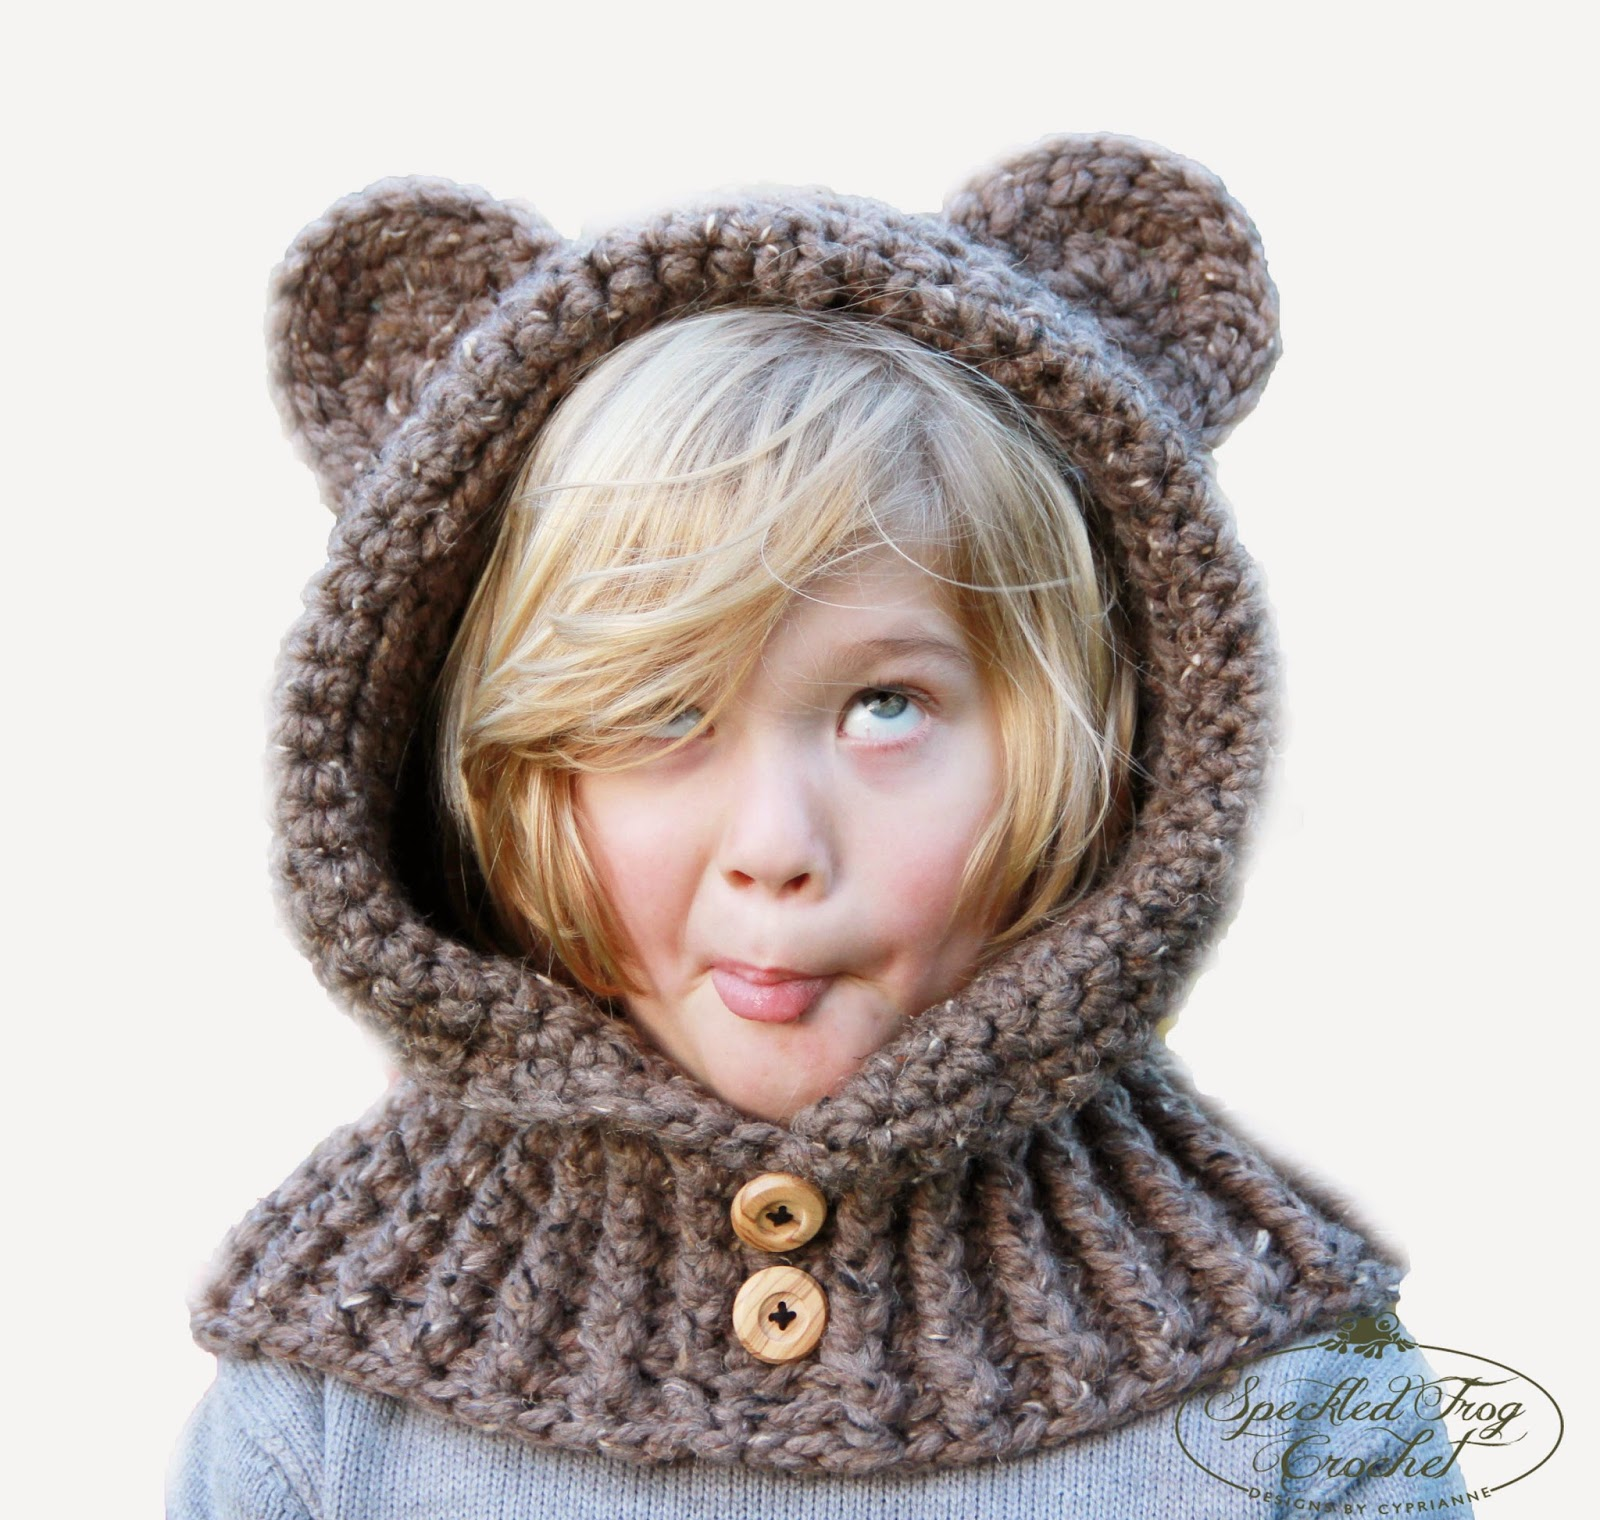 Pretty Darn Adorable Crochet: CROCHET HOODED BEAR COWL PATTERN